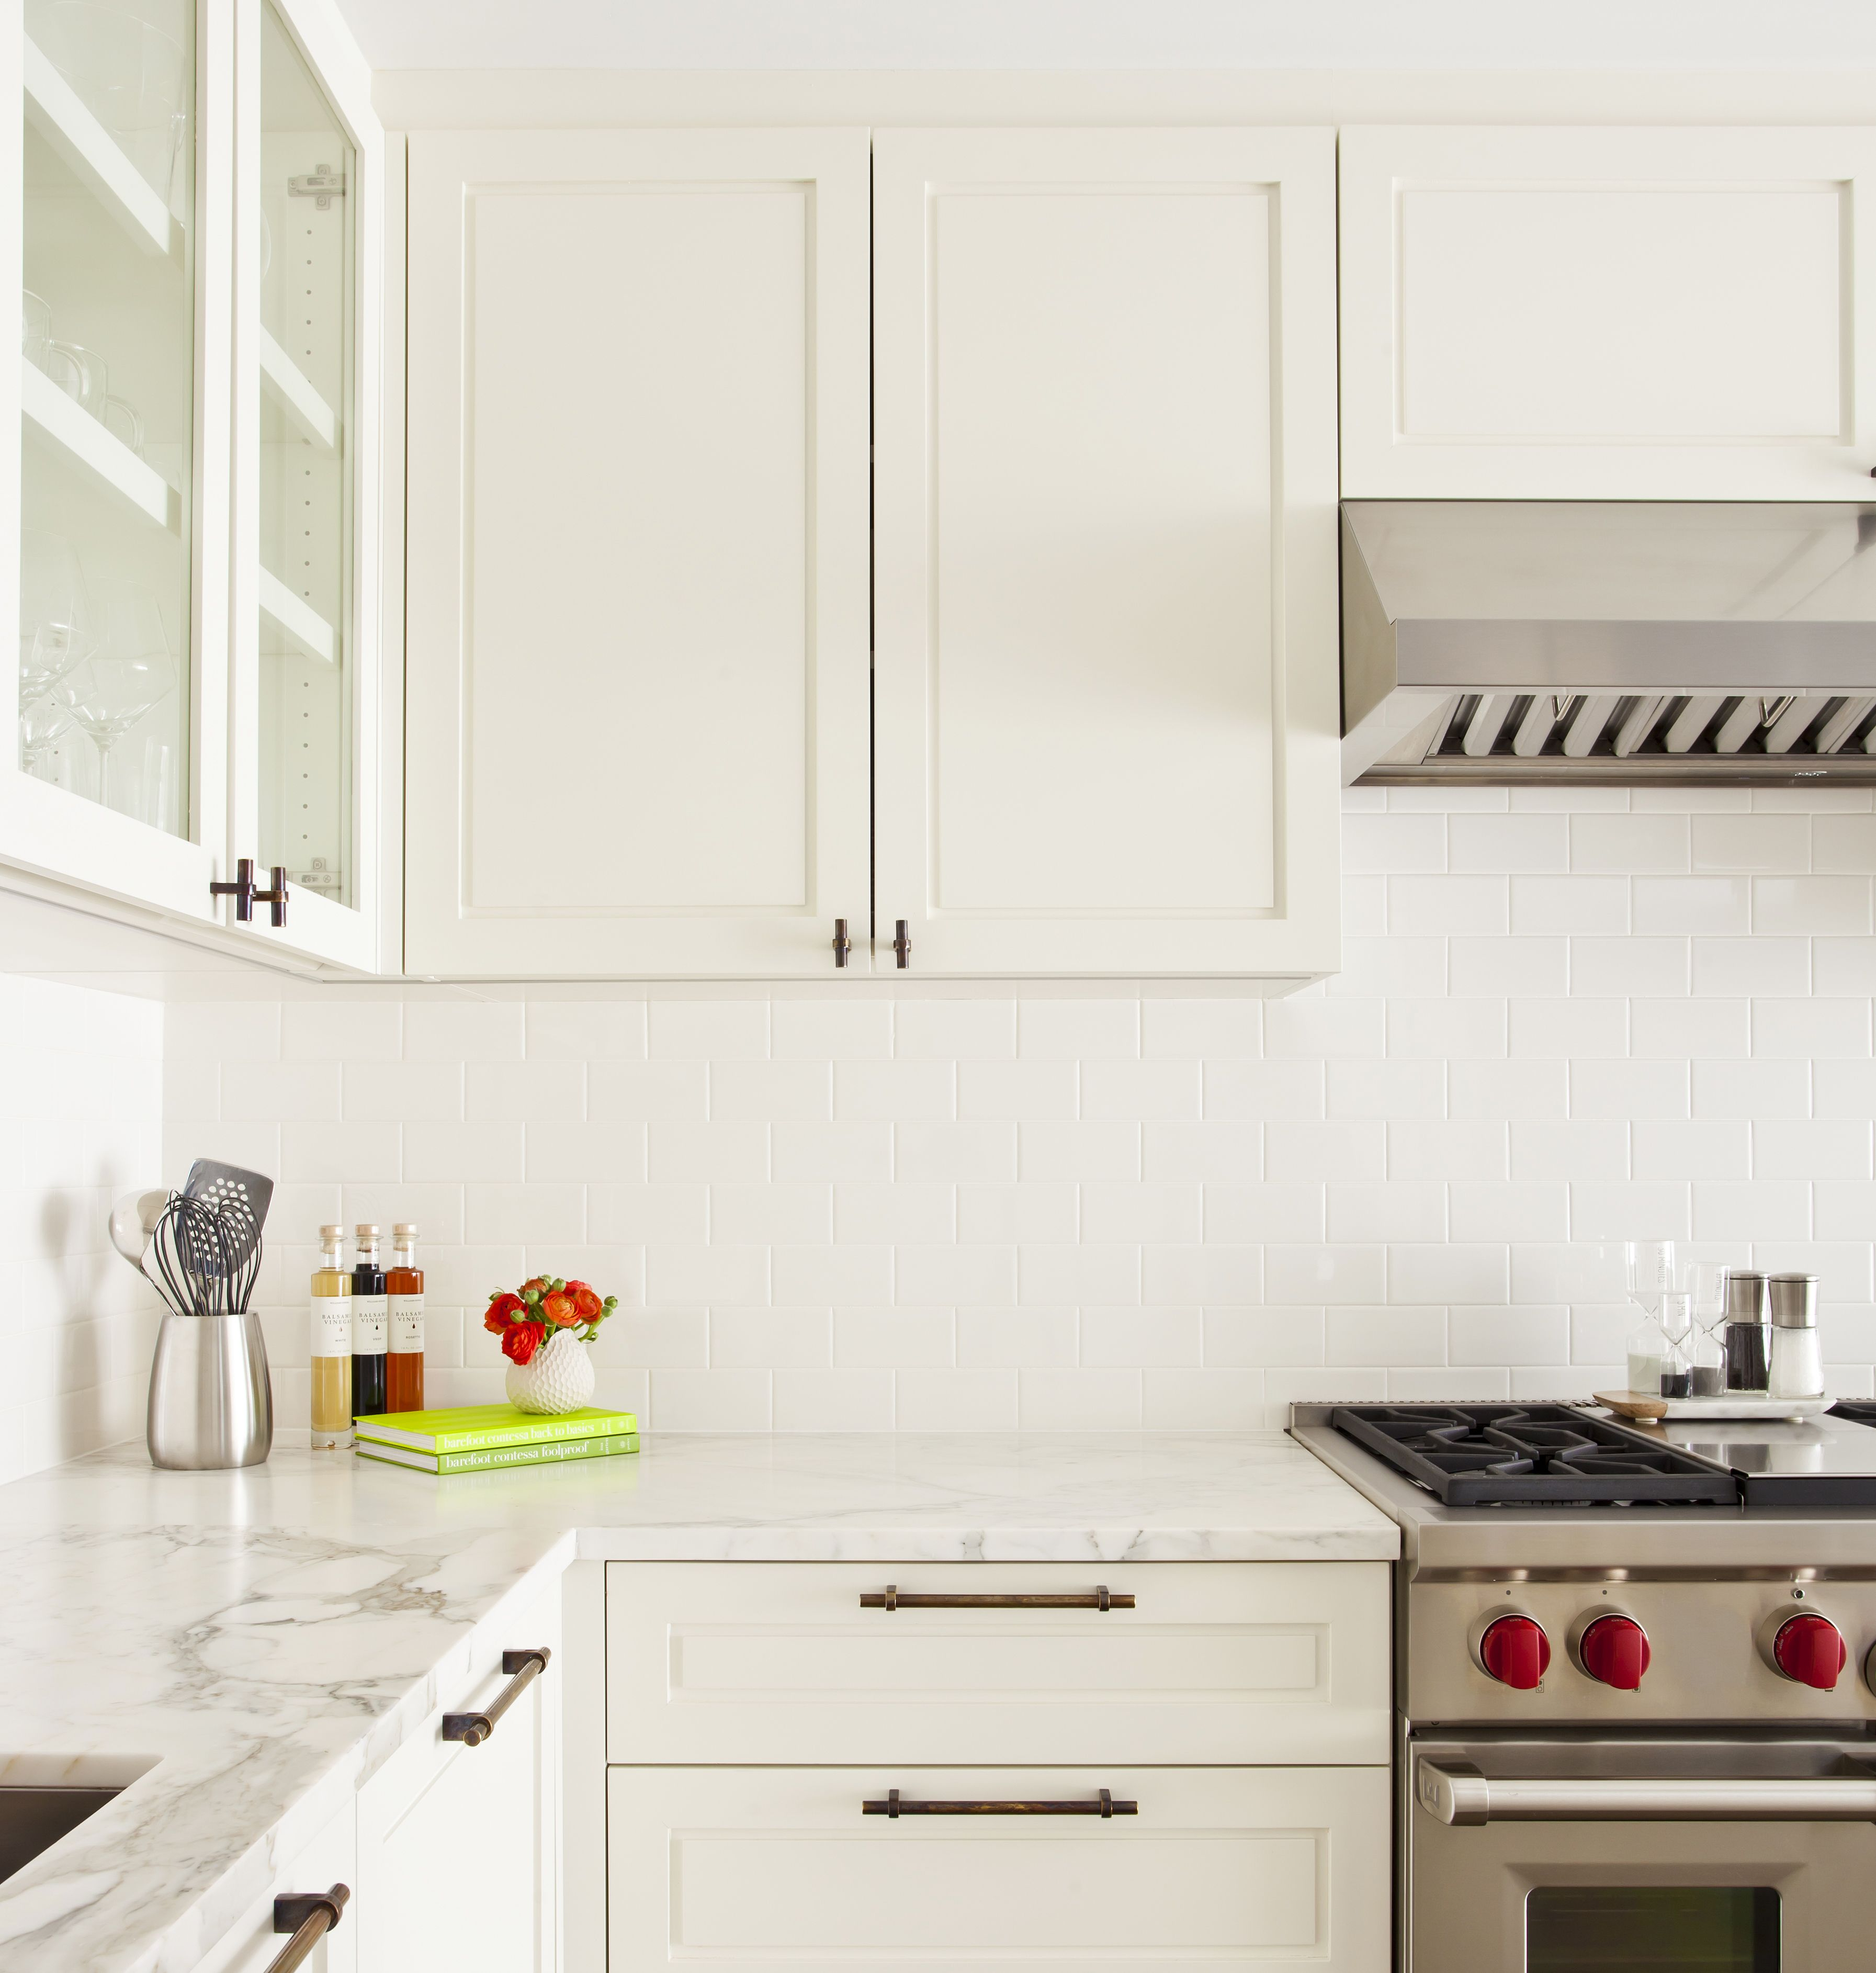 Concord Place Kitchen Kitchen Cabinets White Kitchen Rustic White Kitchen Remodeling